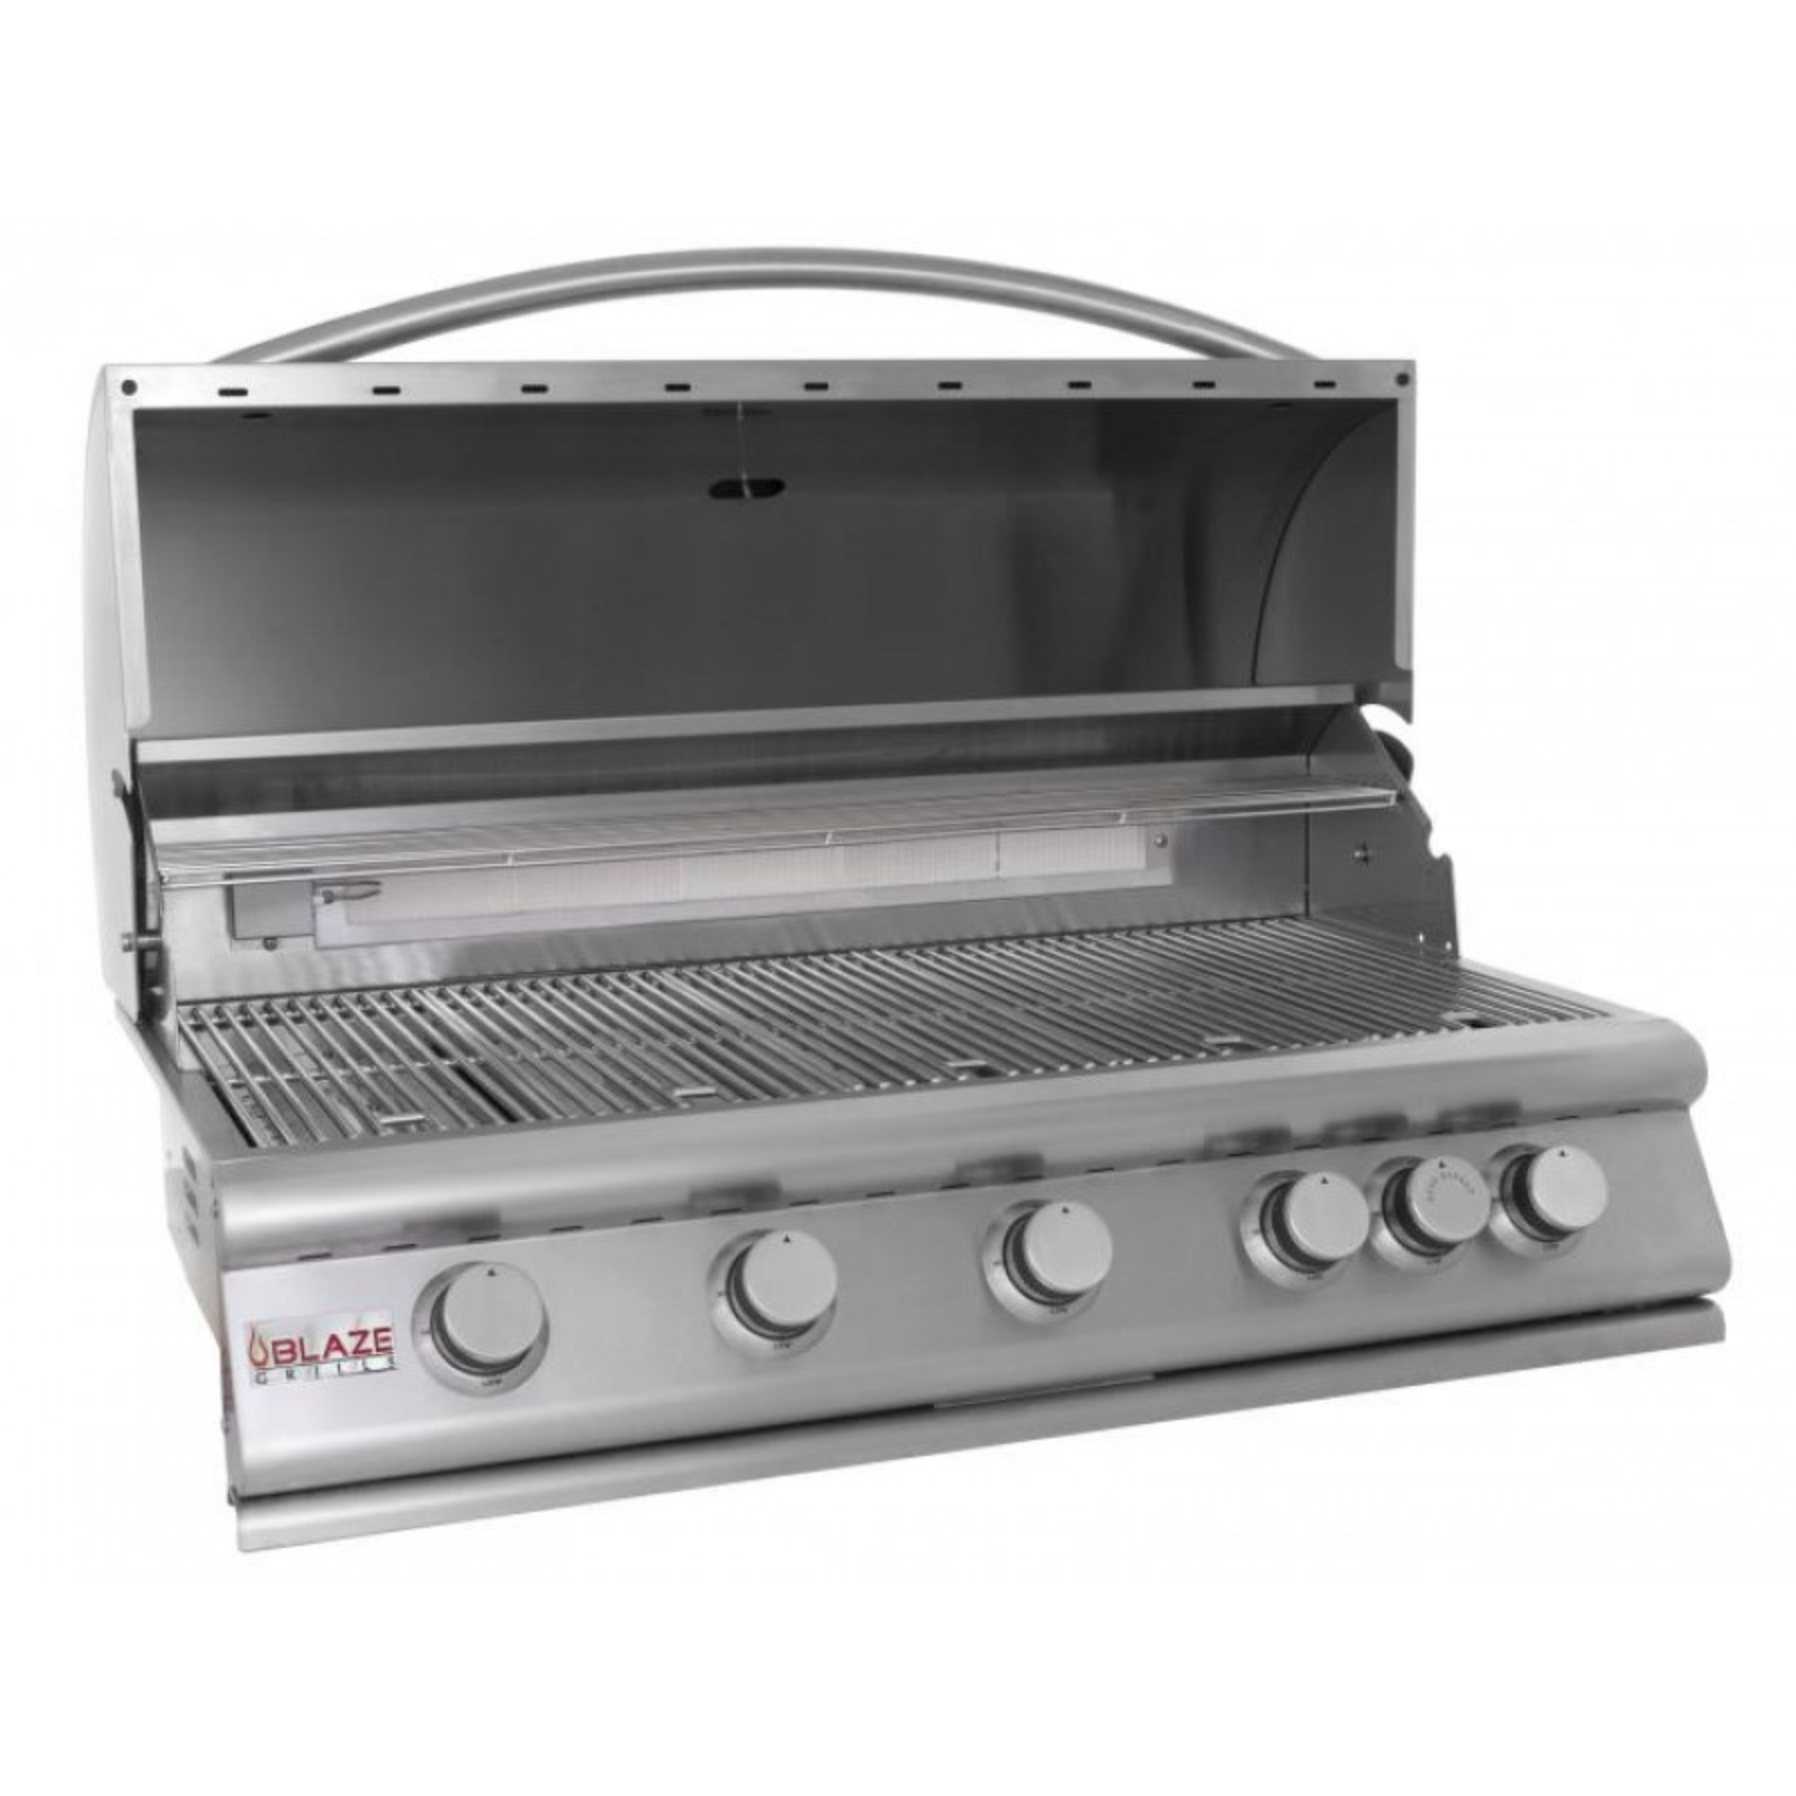 Blaze 40 Inch 5 Burner Built In Propane Gas Grill With Rear Infrared Burner Blz 5 Lp Natural Gas Grill Outdoor Kitchen Design Gas Grill